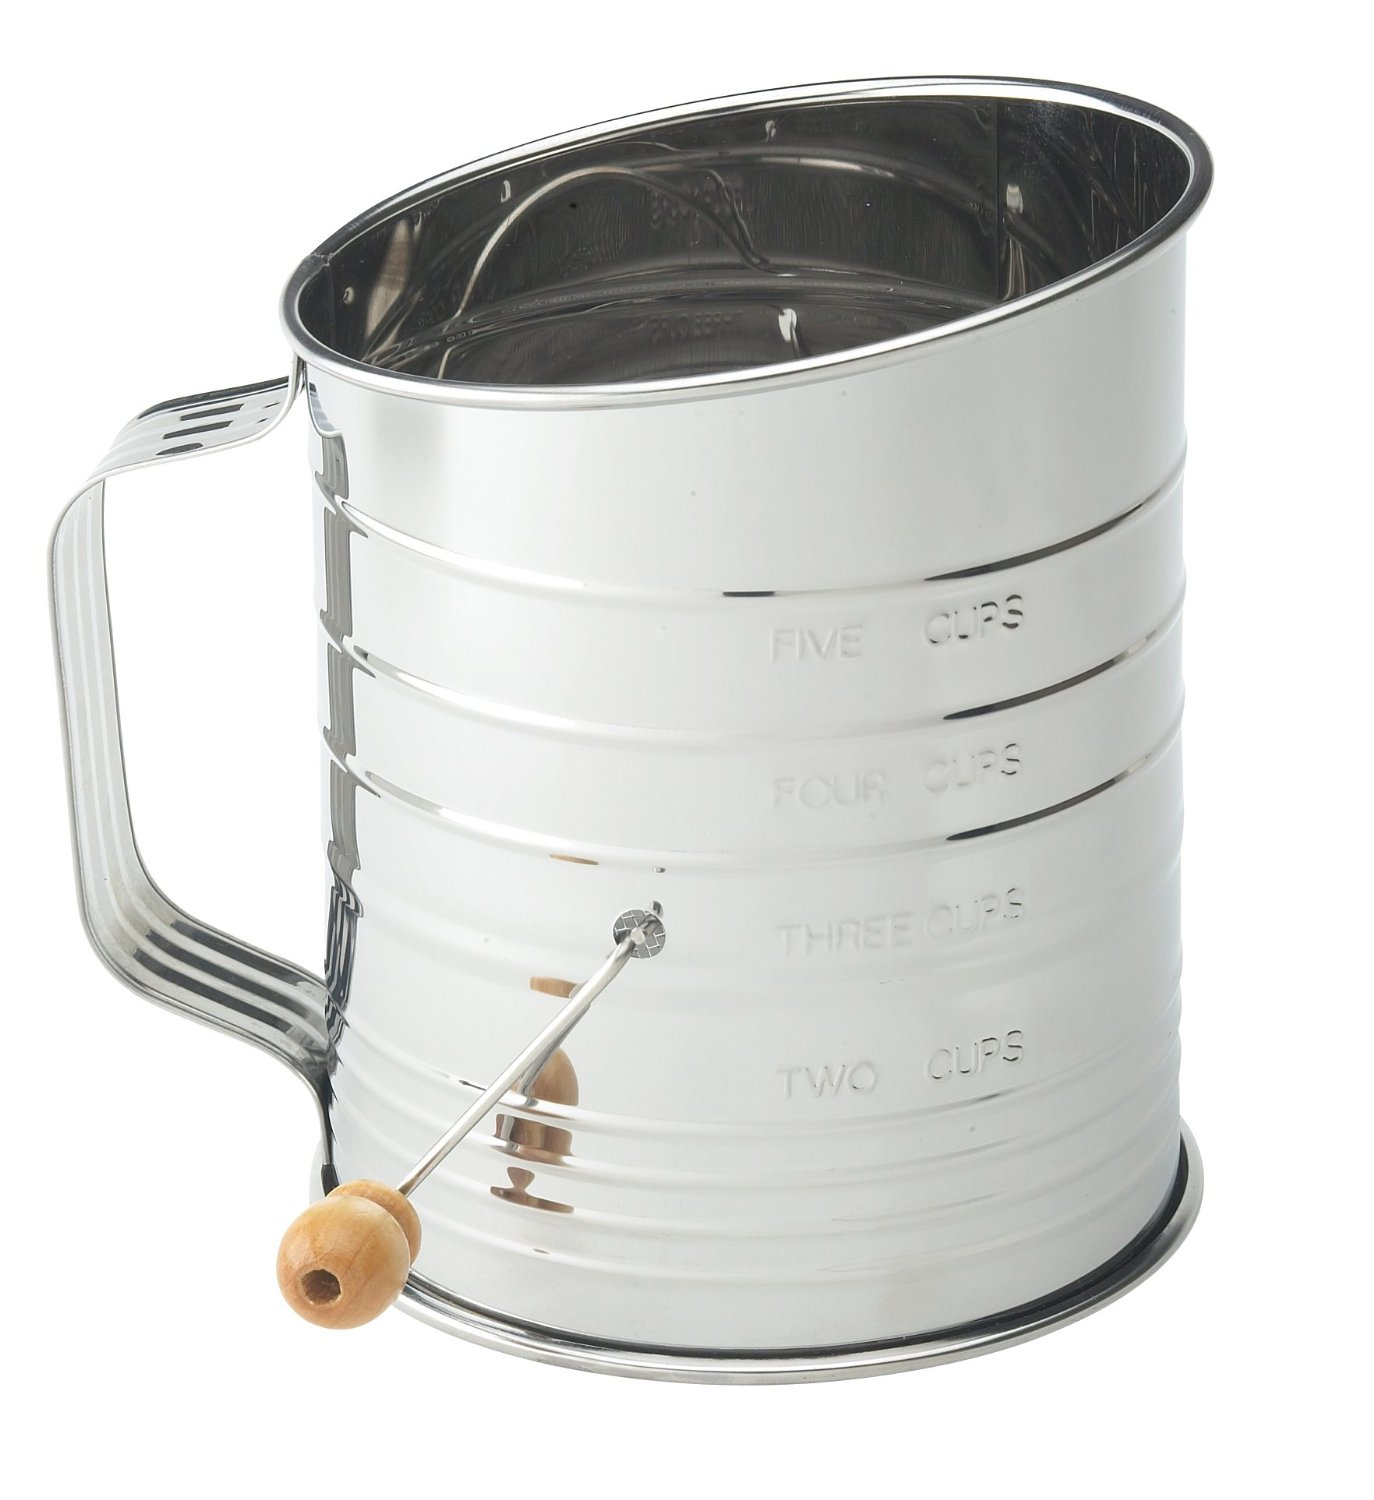 Mrs. Anderson's 5 Cup Crank Flour Sifter Baking Pastry Screen Stainless Steel